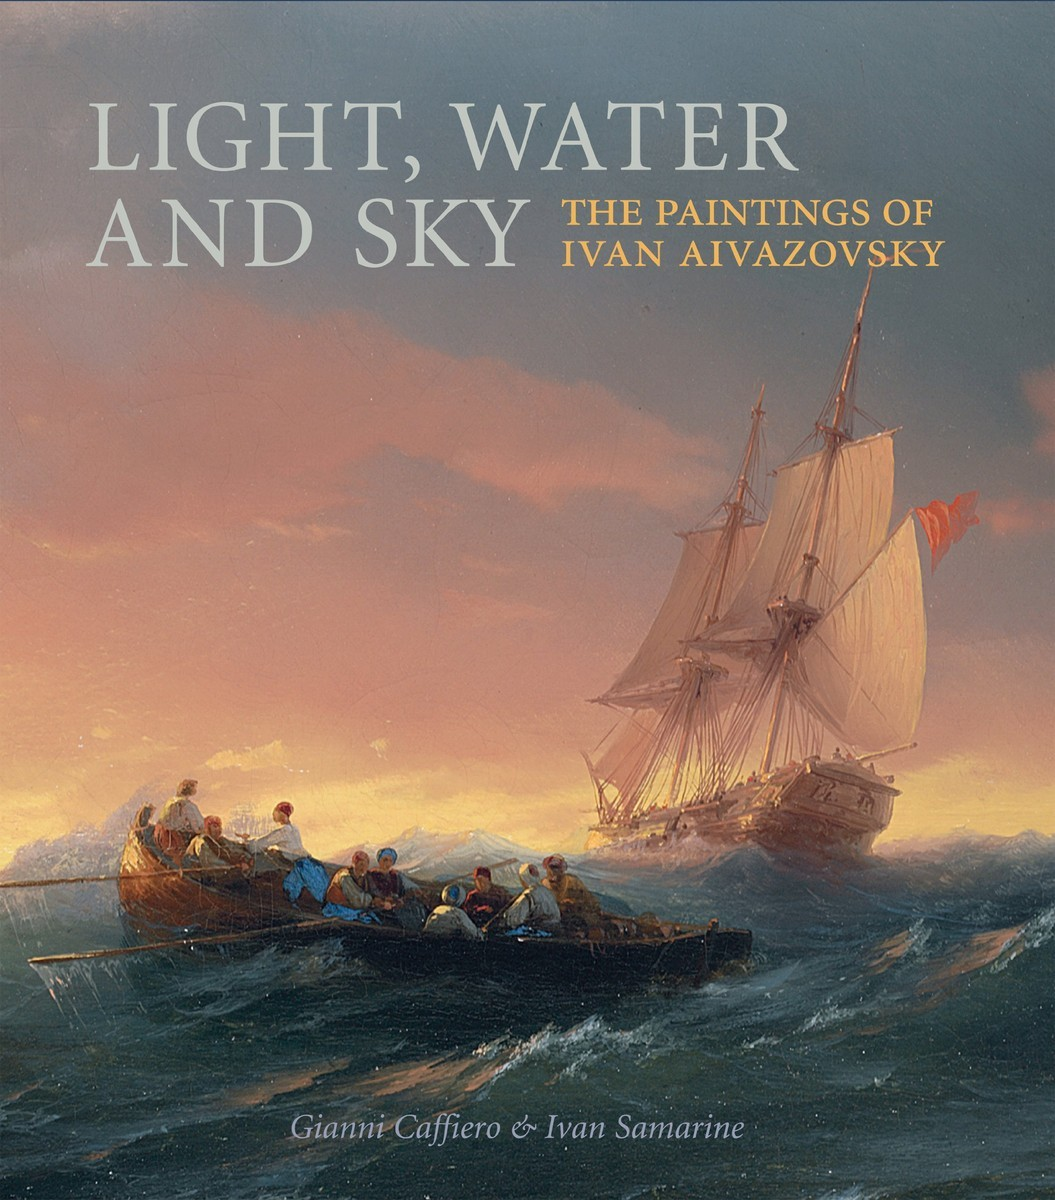 сер./Light,water and sky.The painting of Ivan Aivan Aivazovsky анг. по 4 213.00 руб от изд. Laurence King